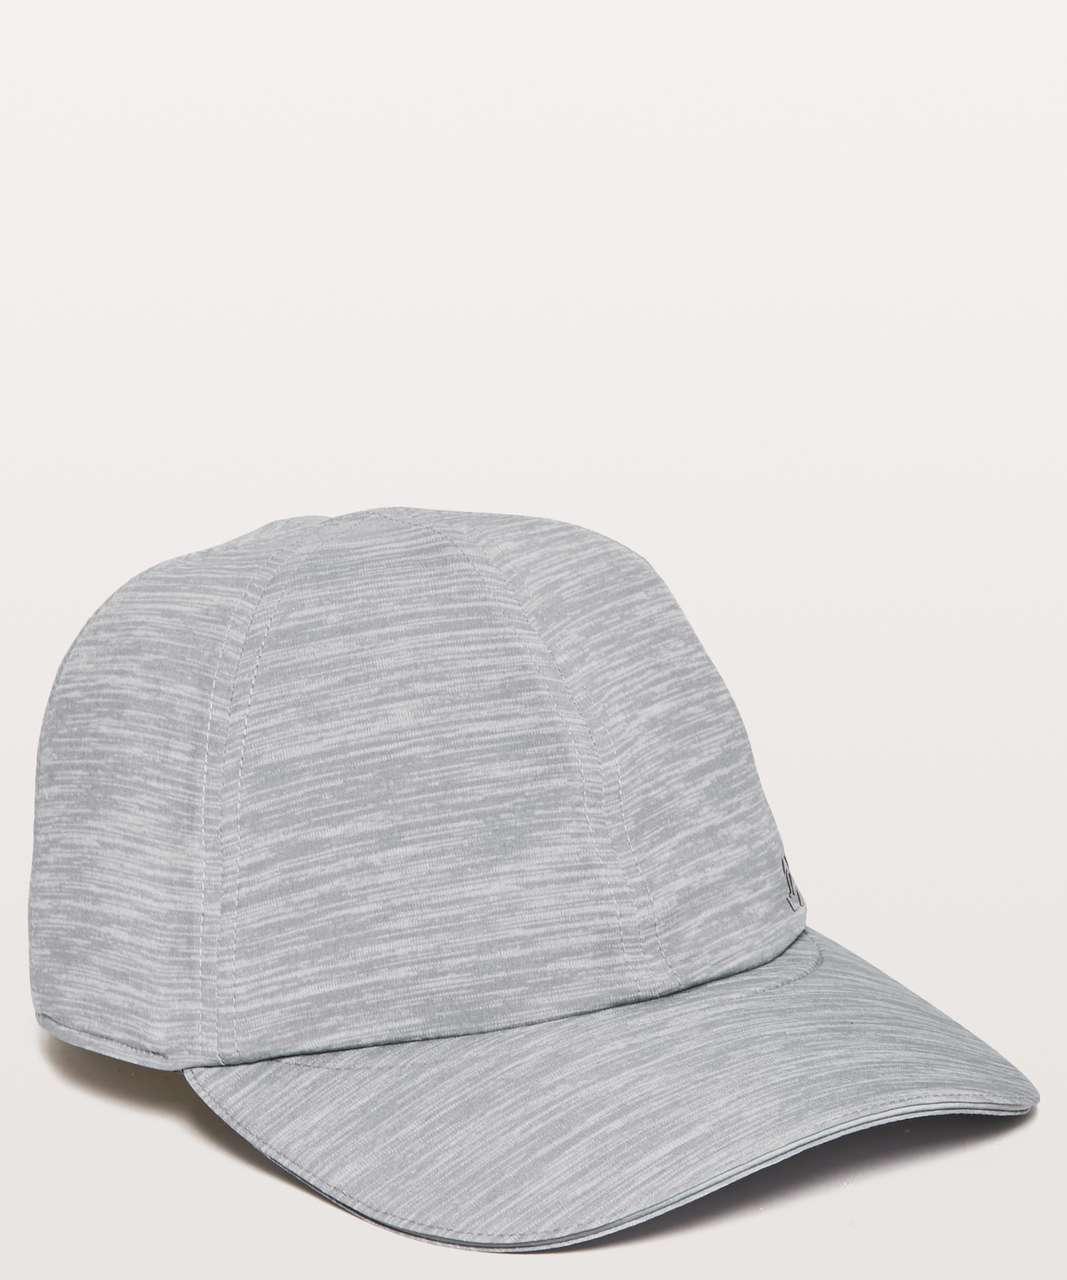 Lululemon Lightspeed Run Hat - Heather Allover Sea Salt Light Cast